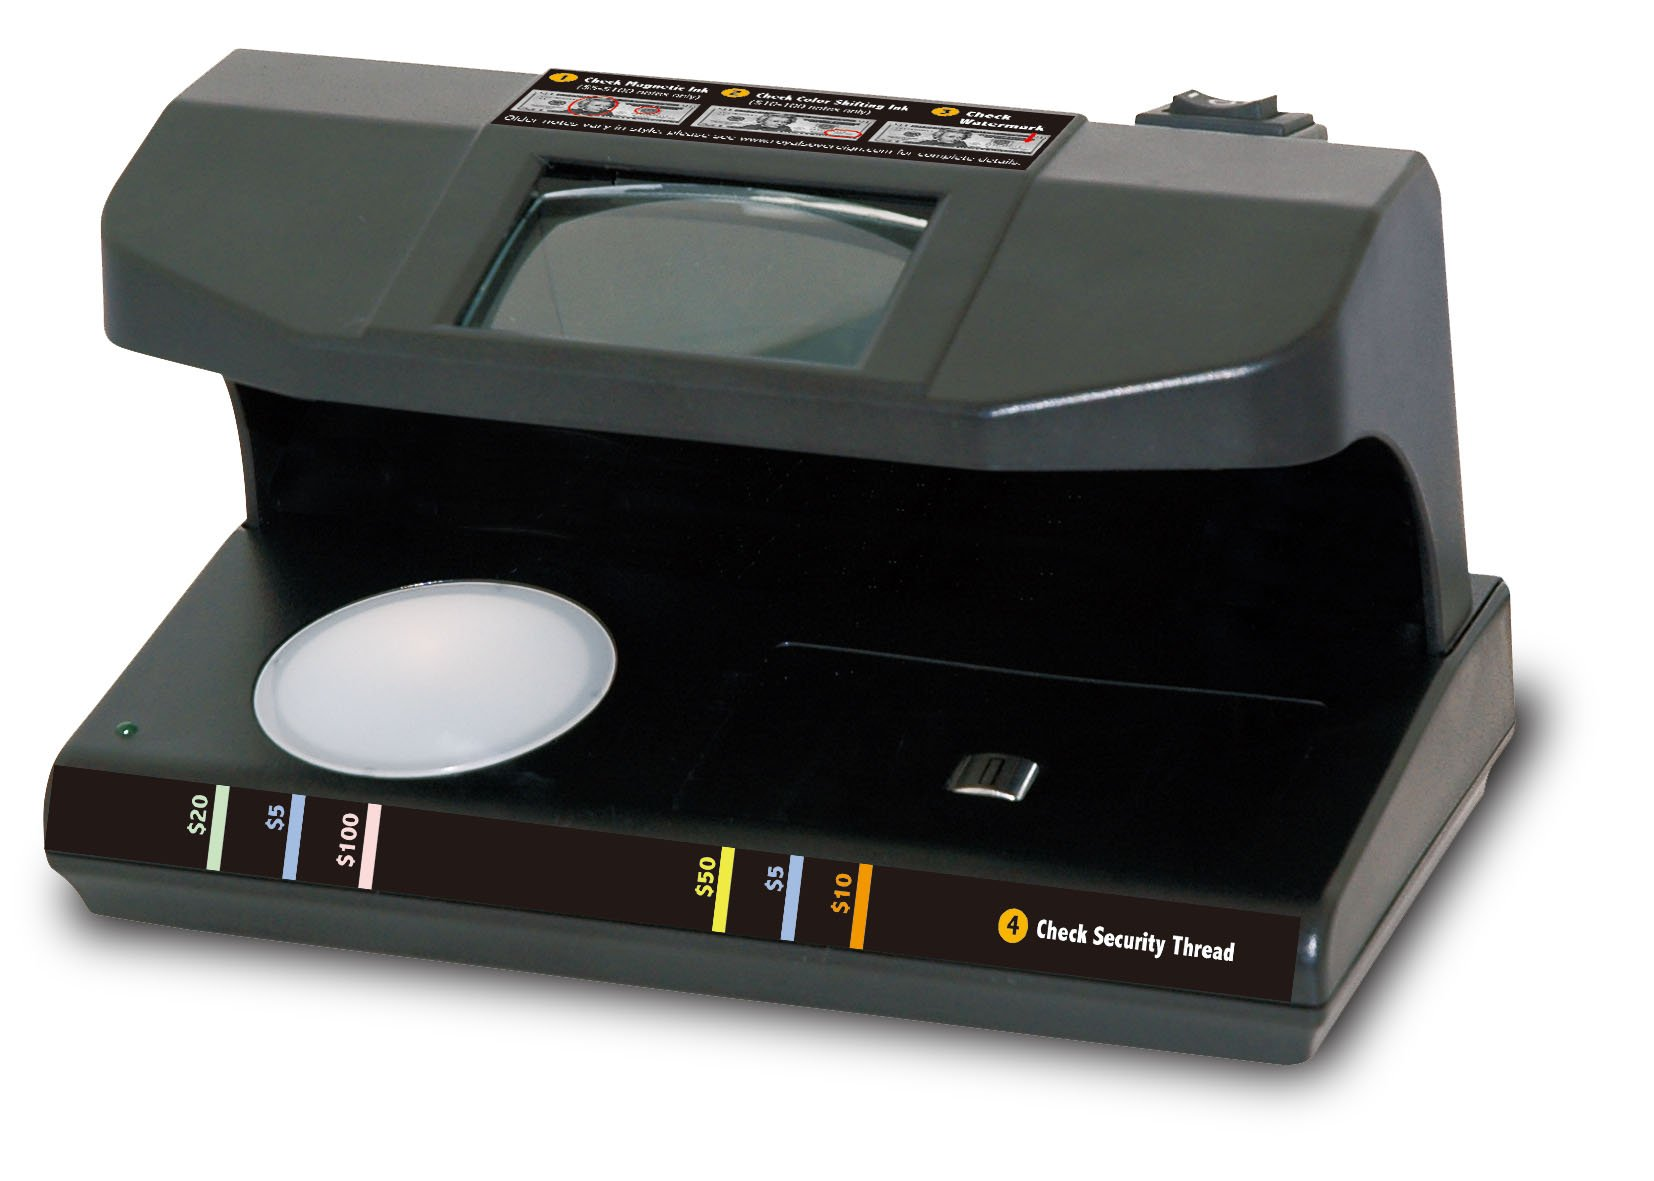 Royal Sovereign Four-Way Counterfeit Detector, Ultraviolet, Magnetic, Watermark, and Micro-Print Counterfeit Detection, Black (RCD-3PLUS)